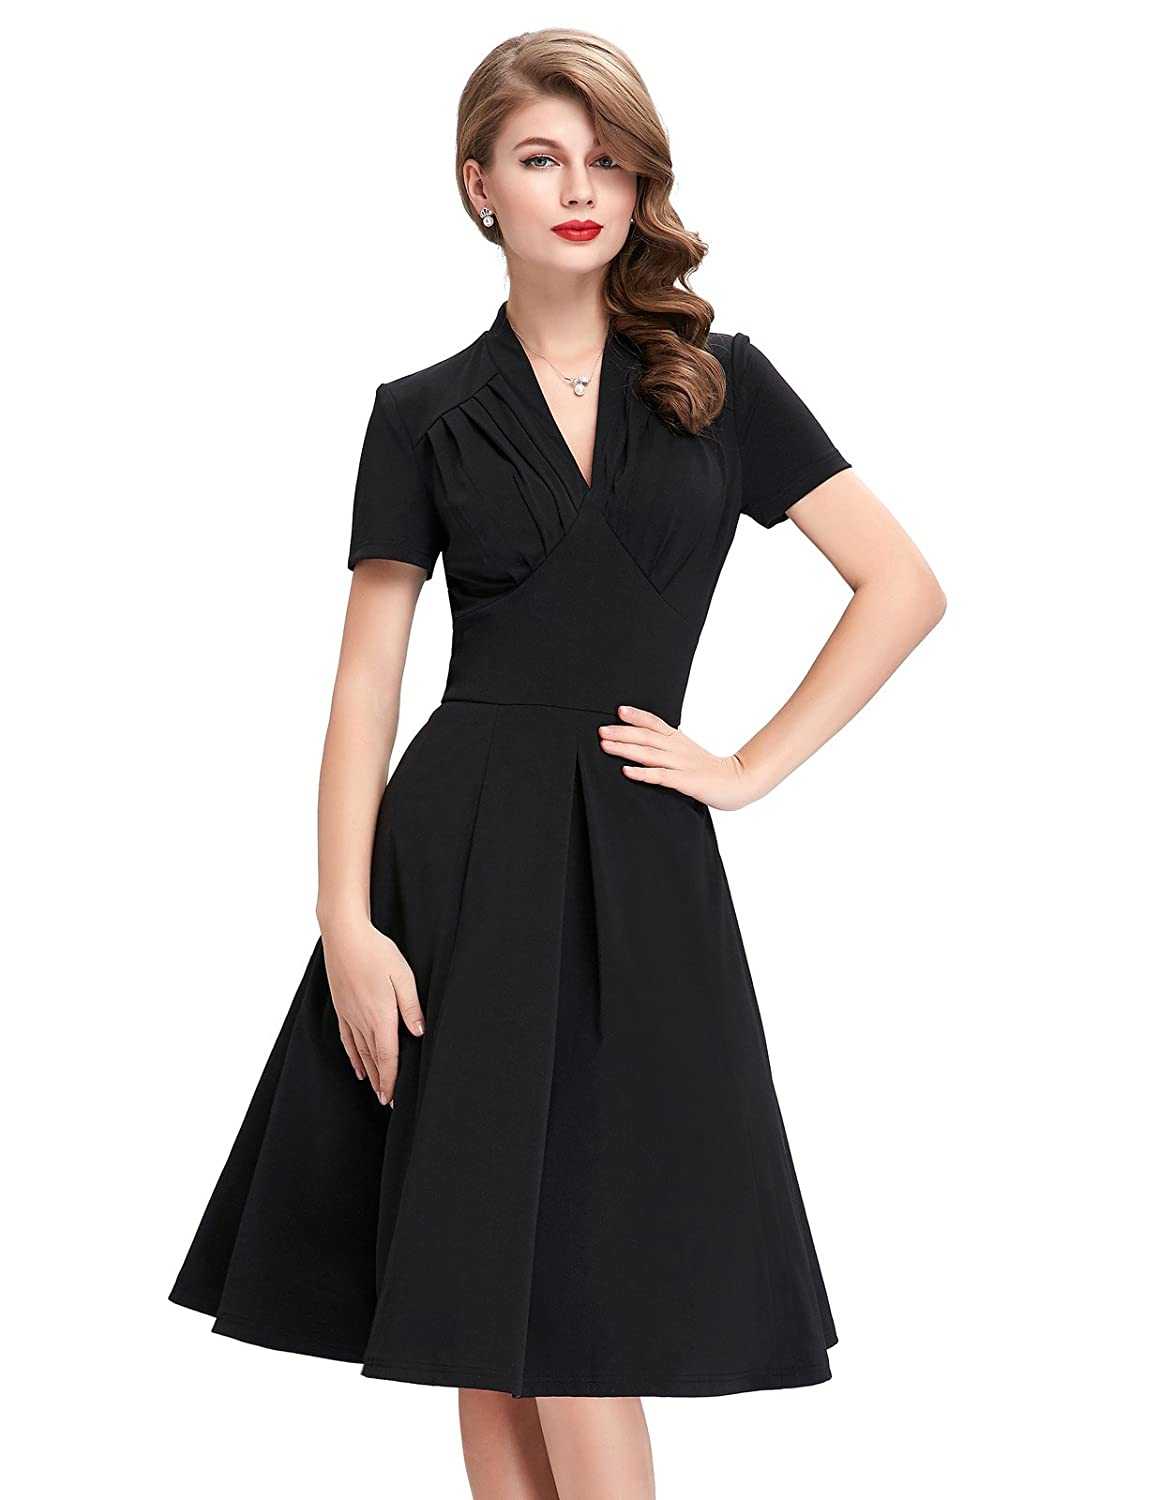 1940s Evening, Prom, Party, Cocktail Dresses & Ball Gowns V-Neck Wiggle Dresses for Women Short Sleeve BP70 / BP199 $29.27 AT vintagedancer.com